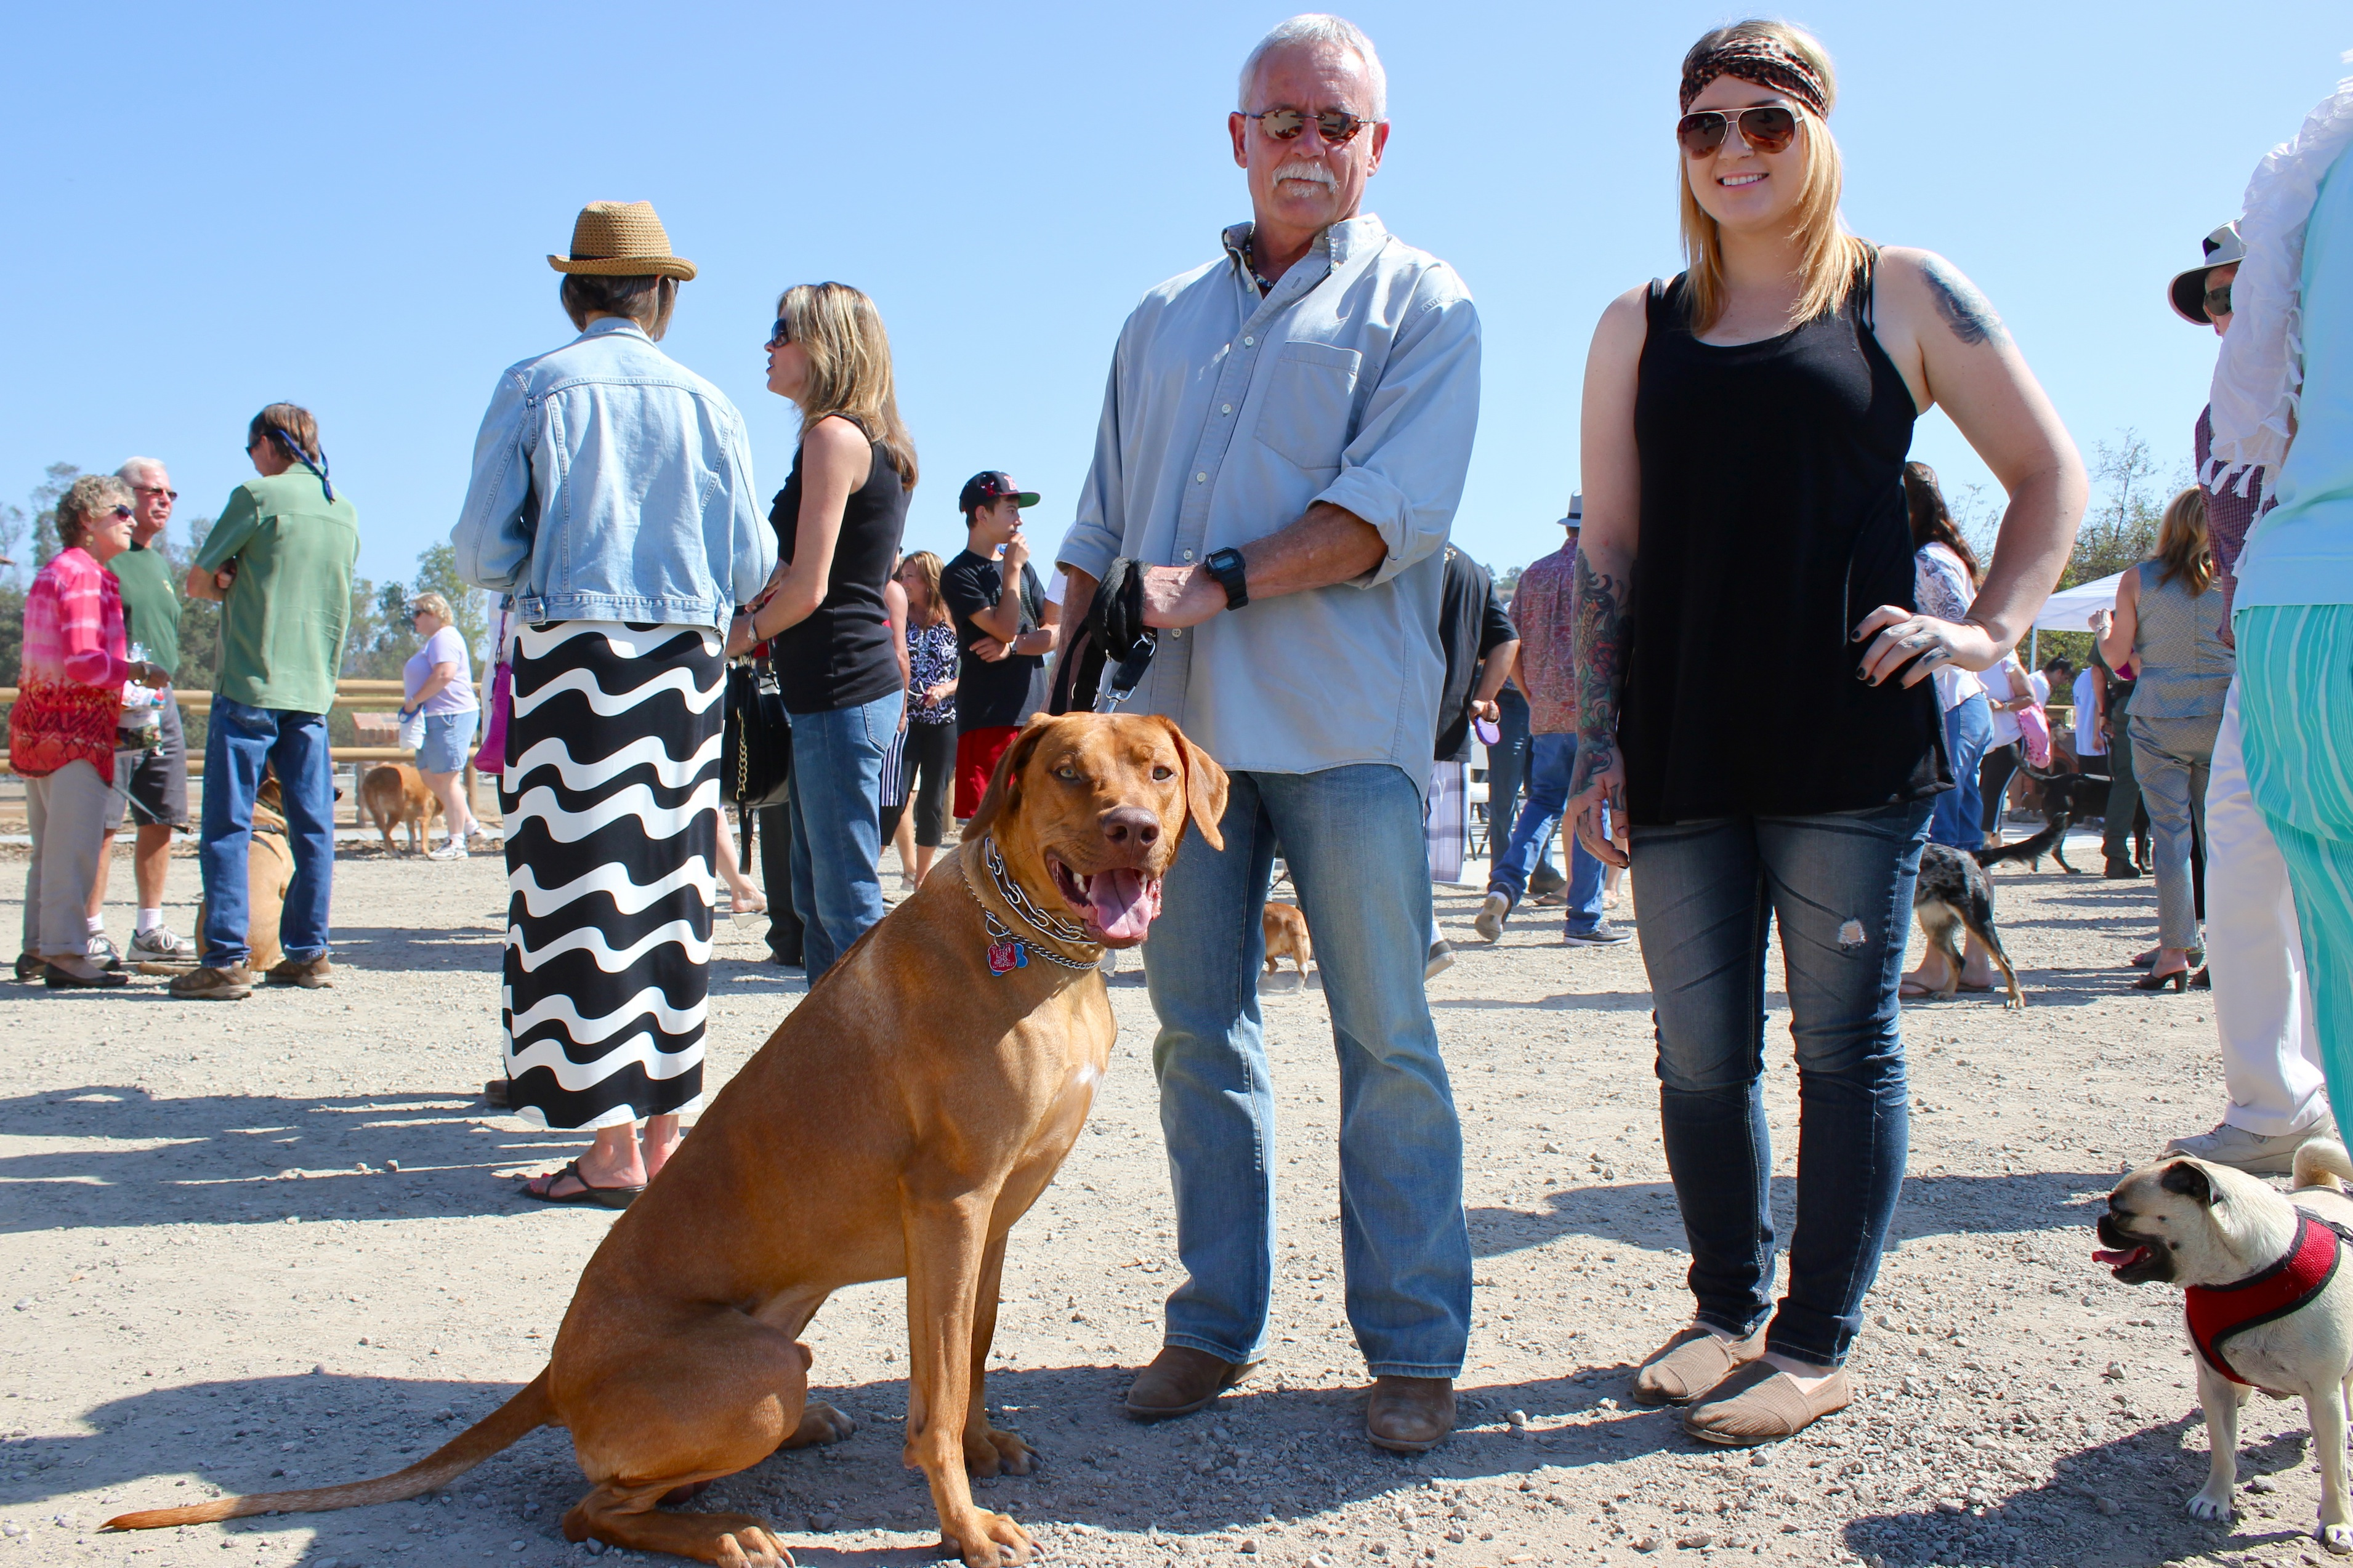 Michael Hoffman and Karen Thomas with their Rhodesian ridgeback, Mr. Brown. Photo by Brian Park